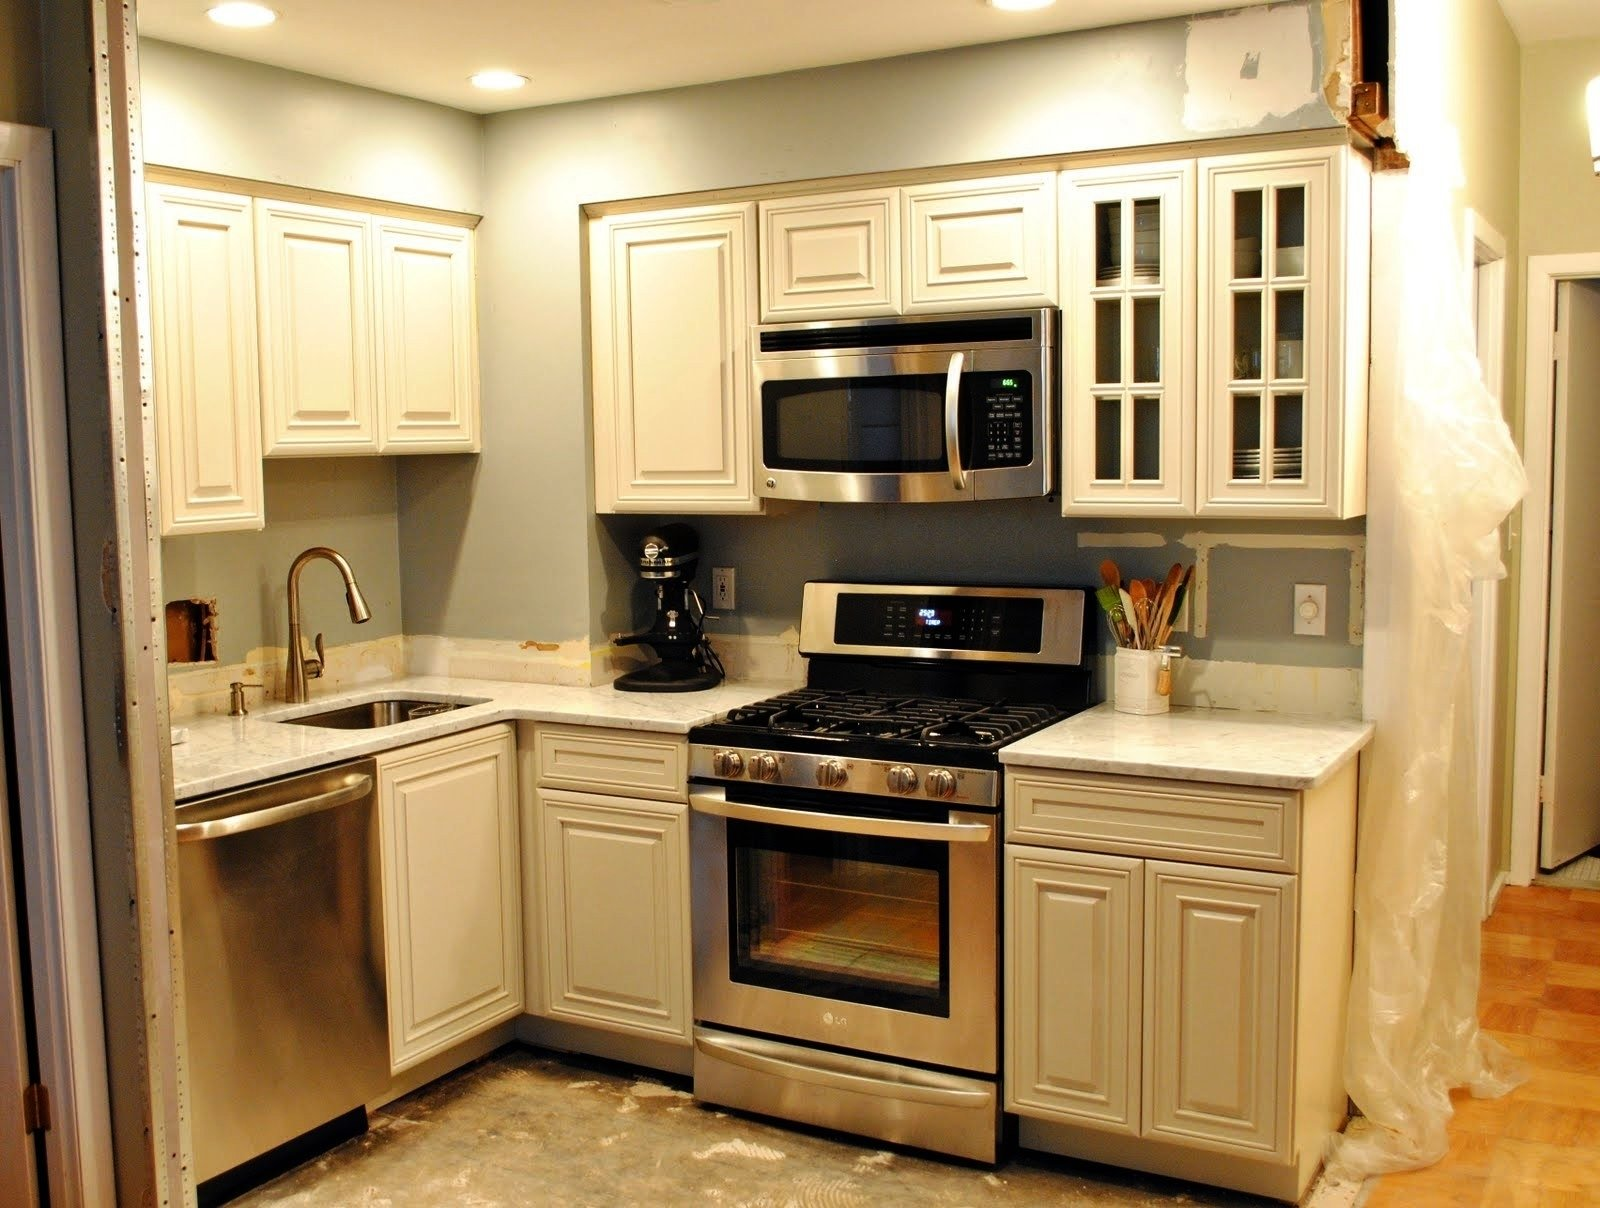 10 Stylish Cabinet Ideas For Small Kitchens new 2017 kitchen cabinet ideas for small kitchens kutskokitchen